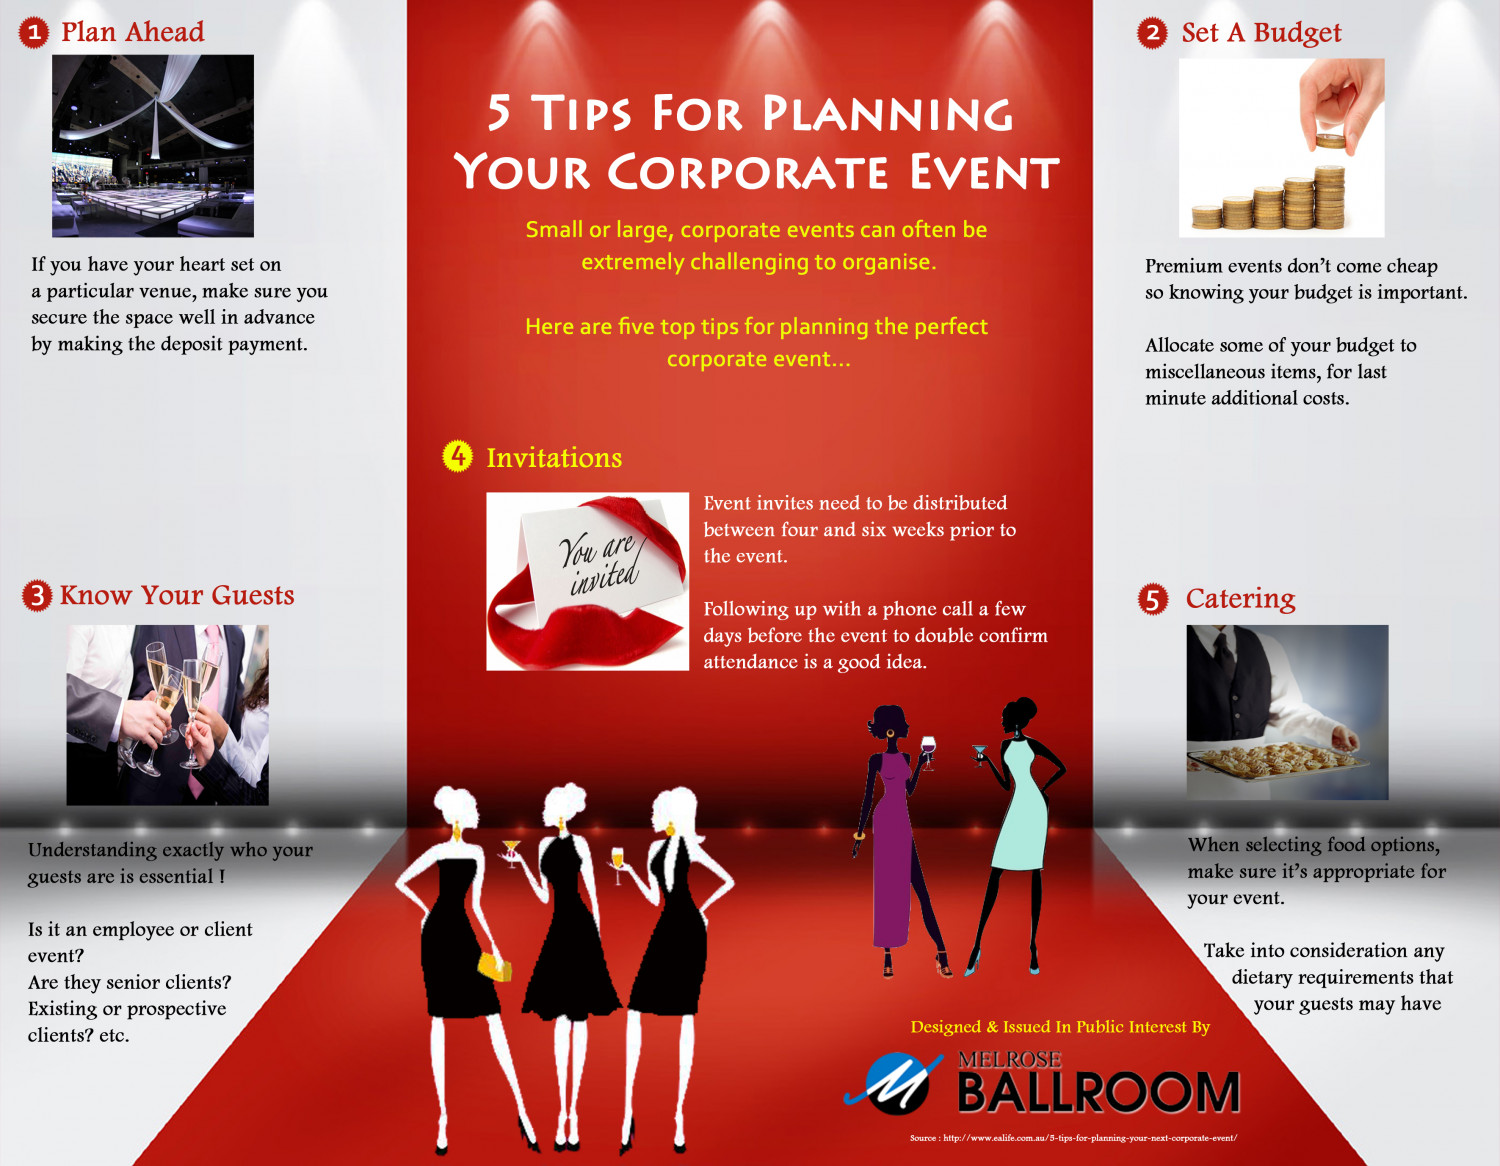 5 Tips For Planning Your Corporate Event Infographic